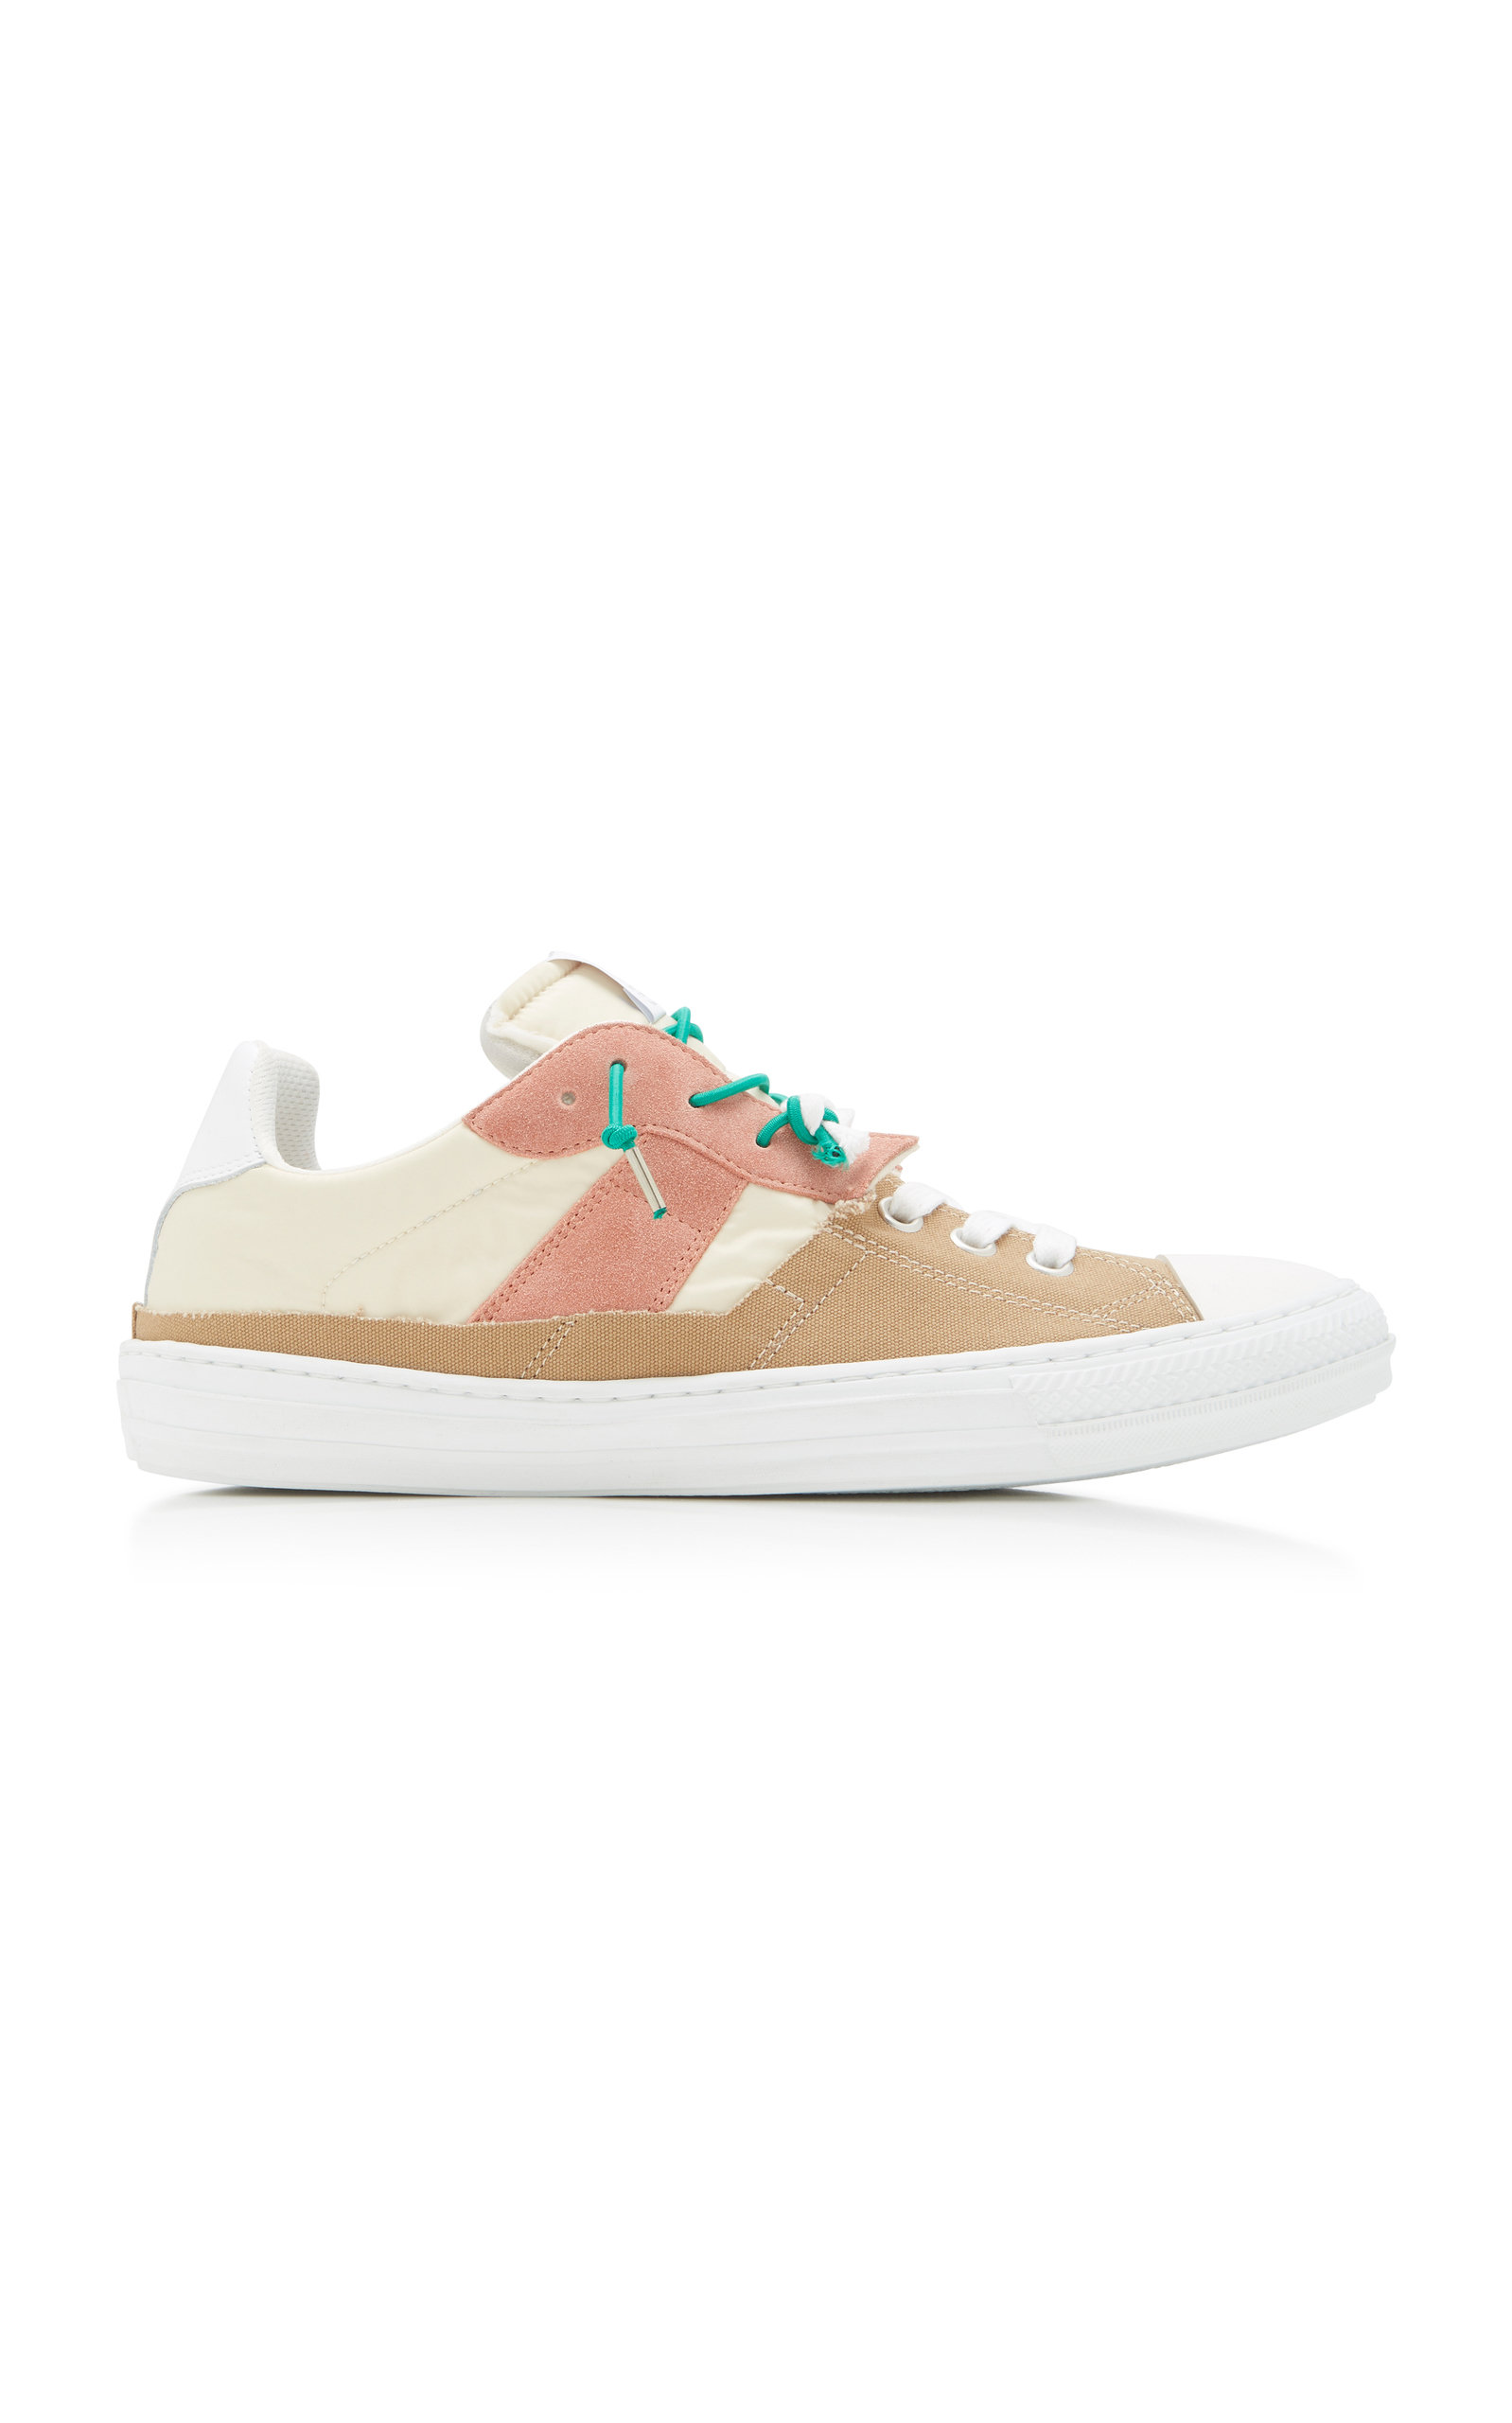 MAISON MARGIELA | Maison Margiela Replica Suede Shell And Canvas Low-Top Sneakers | Goxip